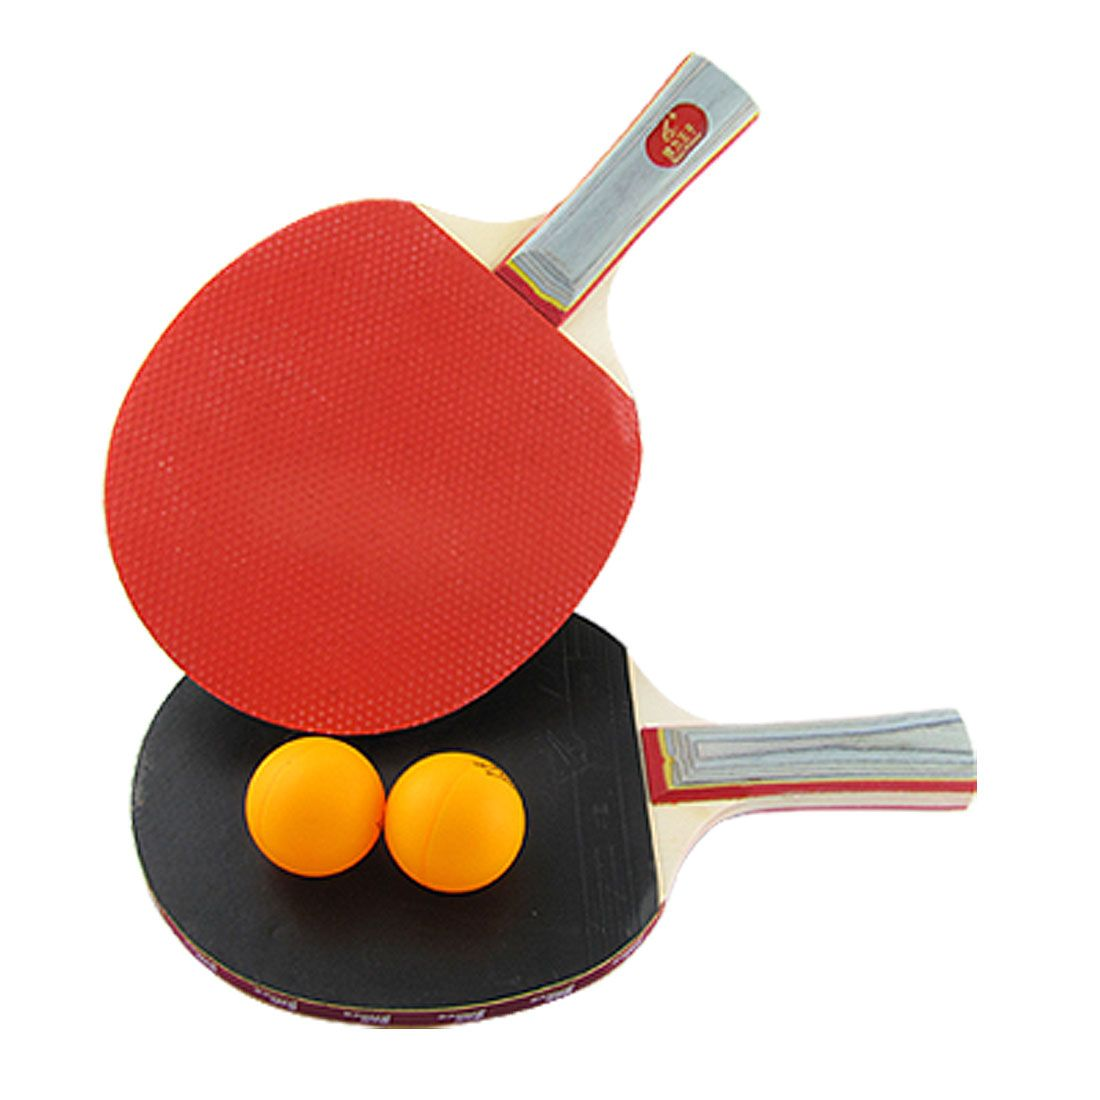 Ping Pong Paddle Ball Ping Pong Paddle Ball - Find more table tennis ...